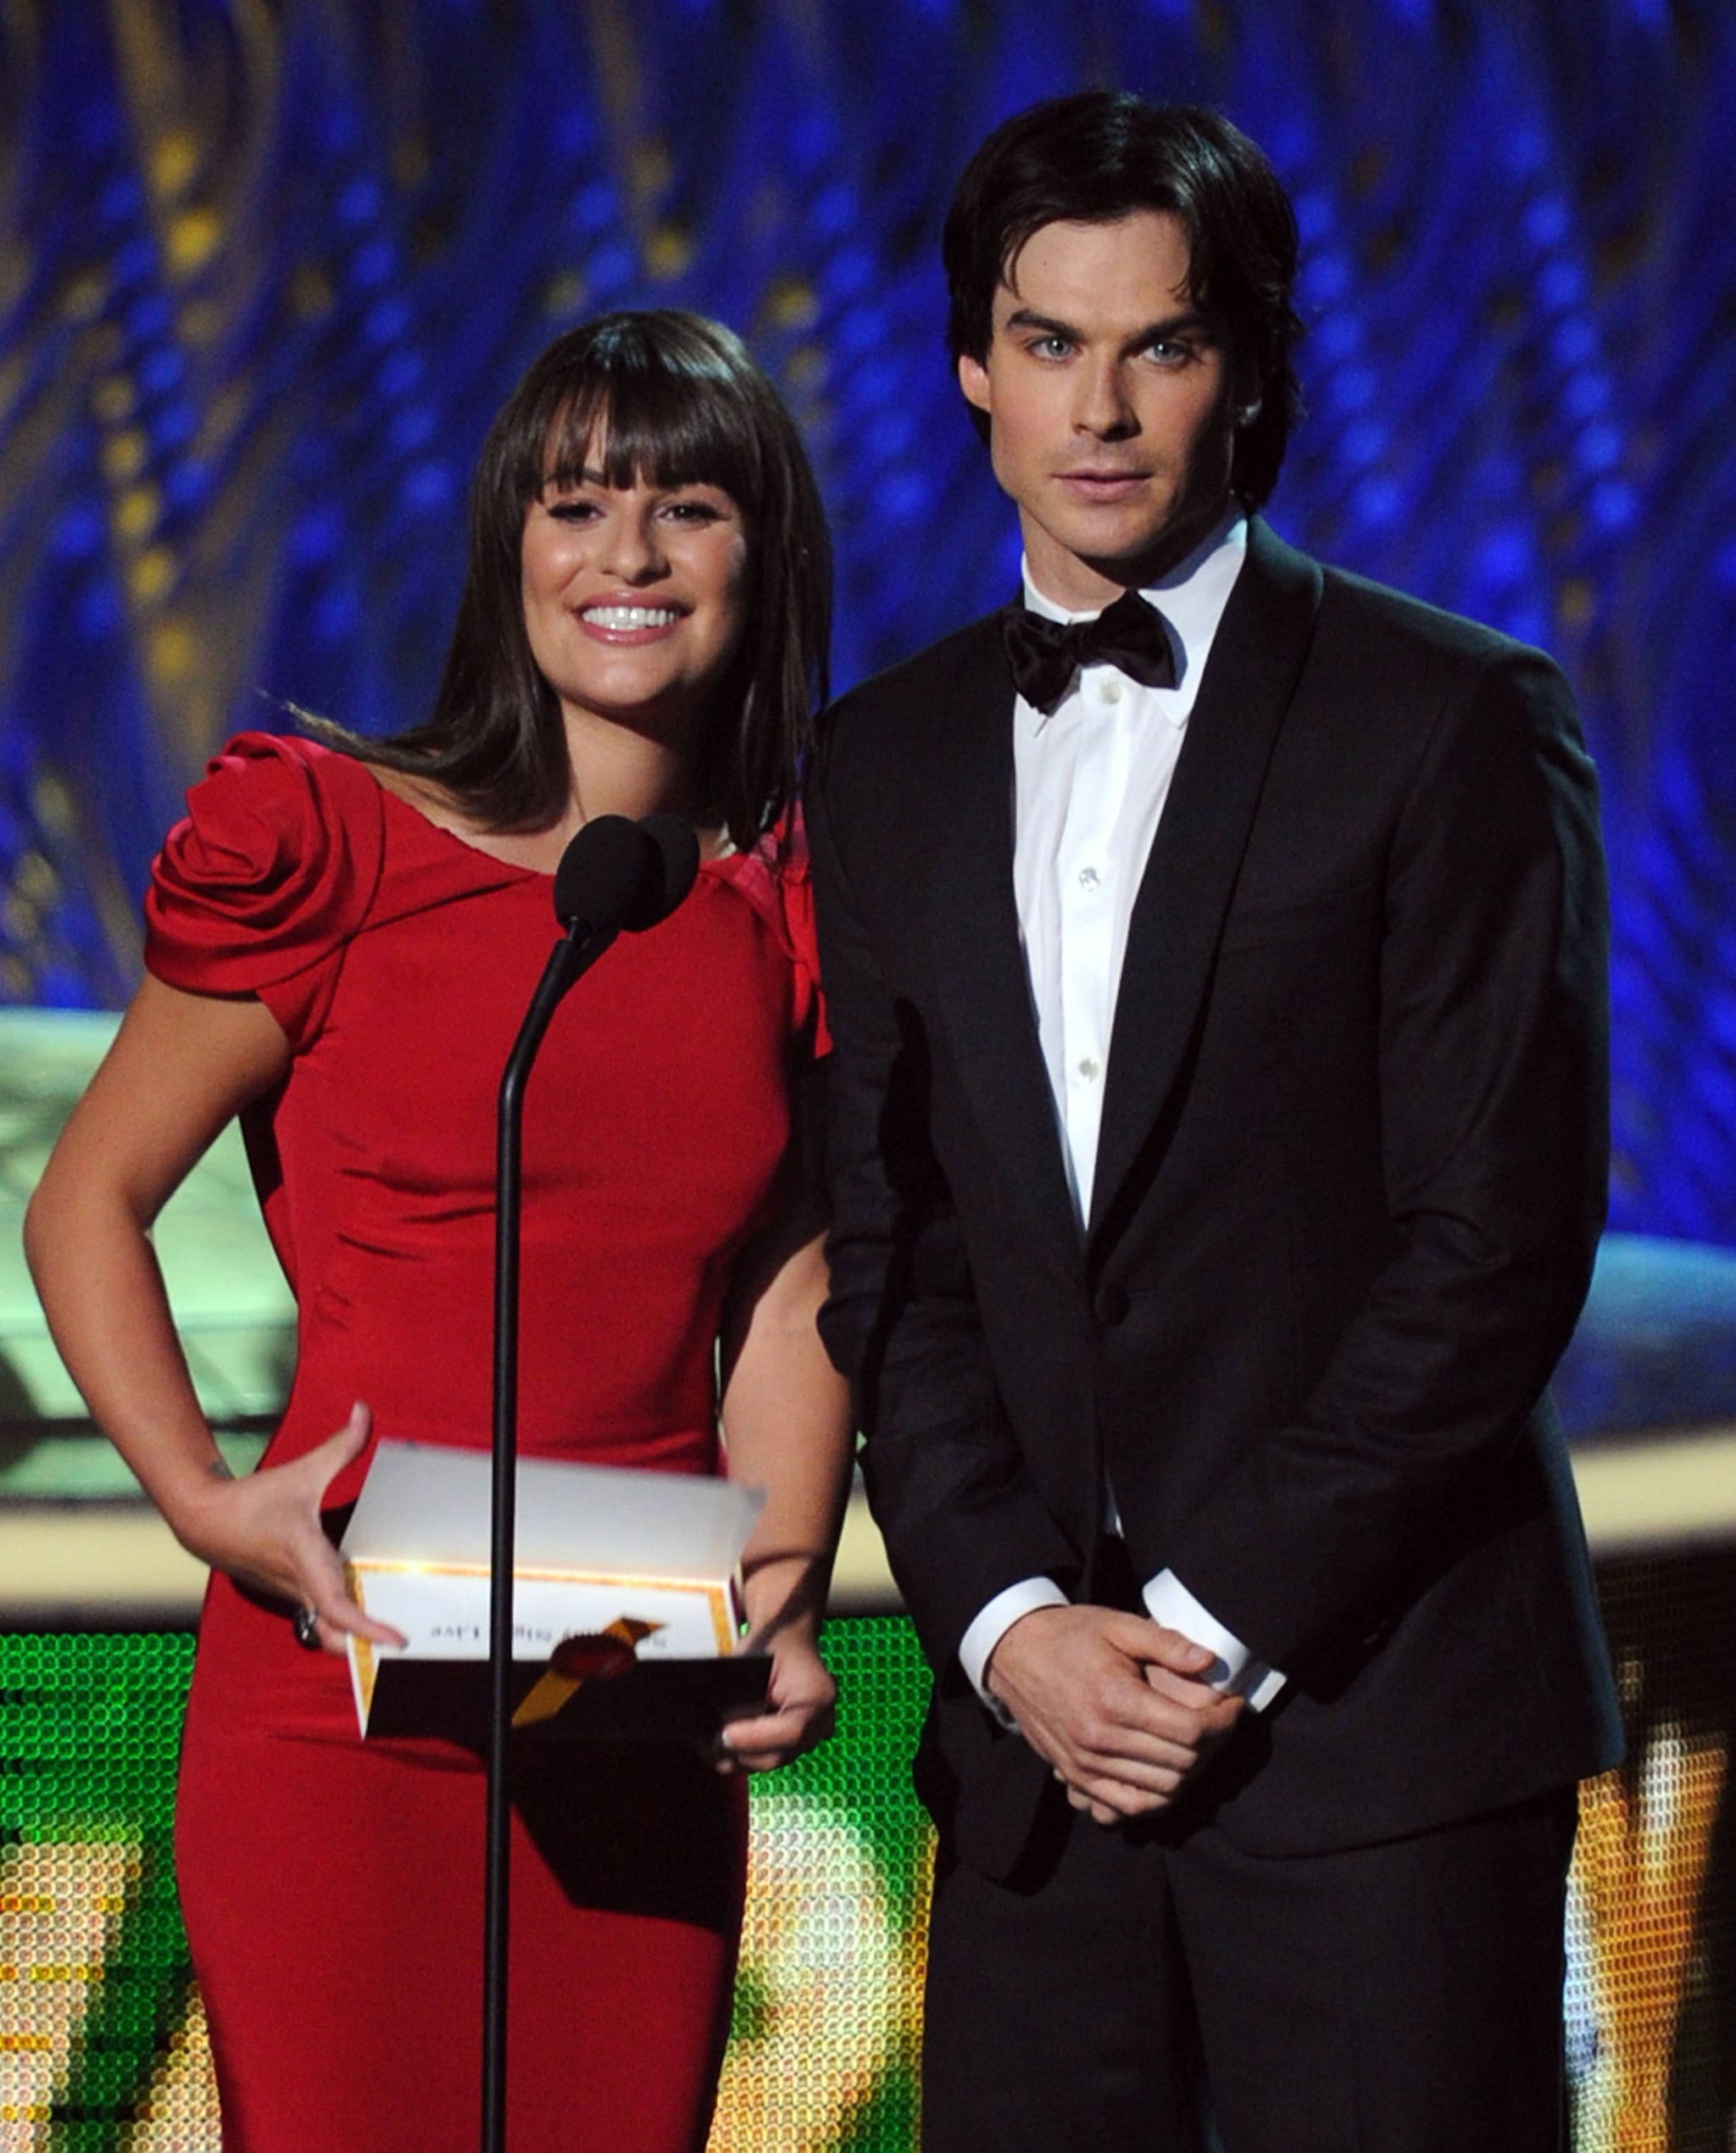 Lea Michele and Ian Somerhalder were presenters at the 2011 Emmy Awards.